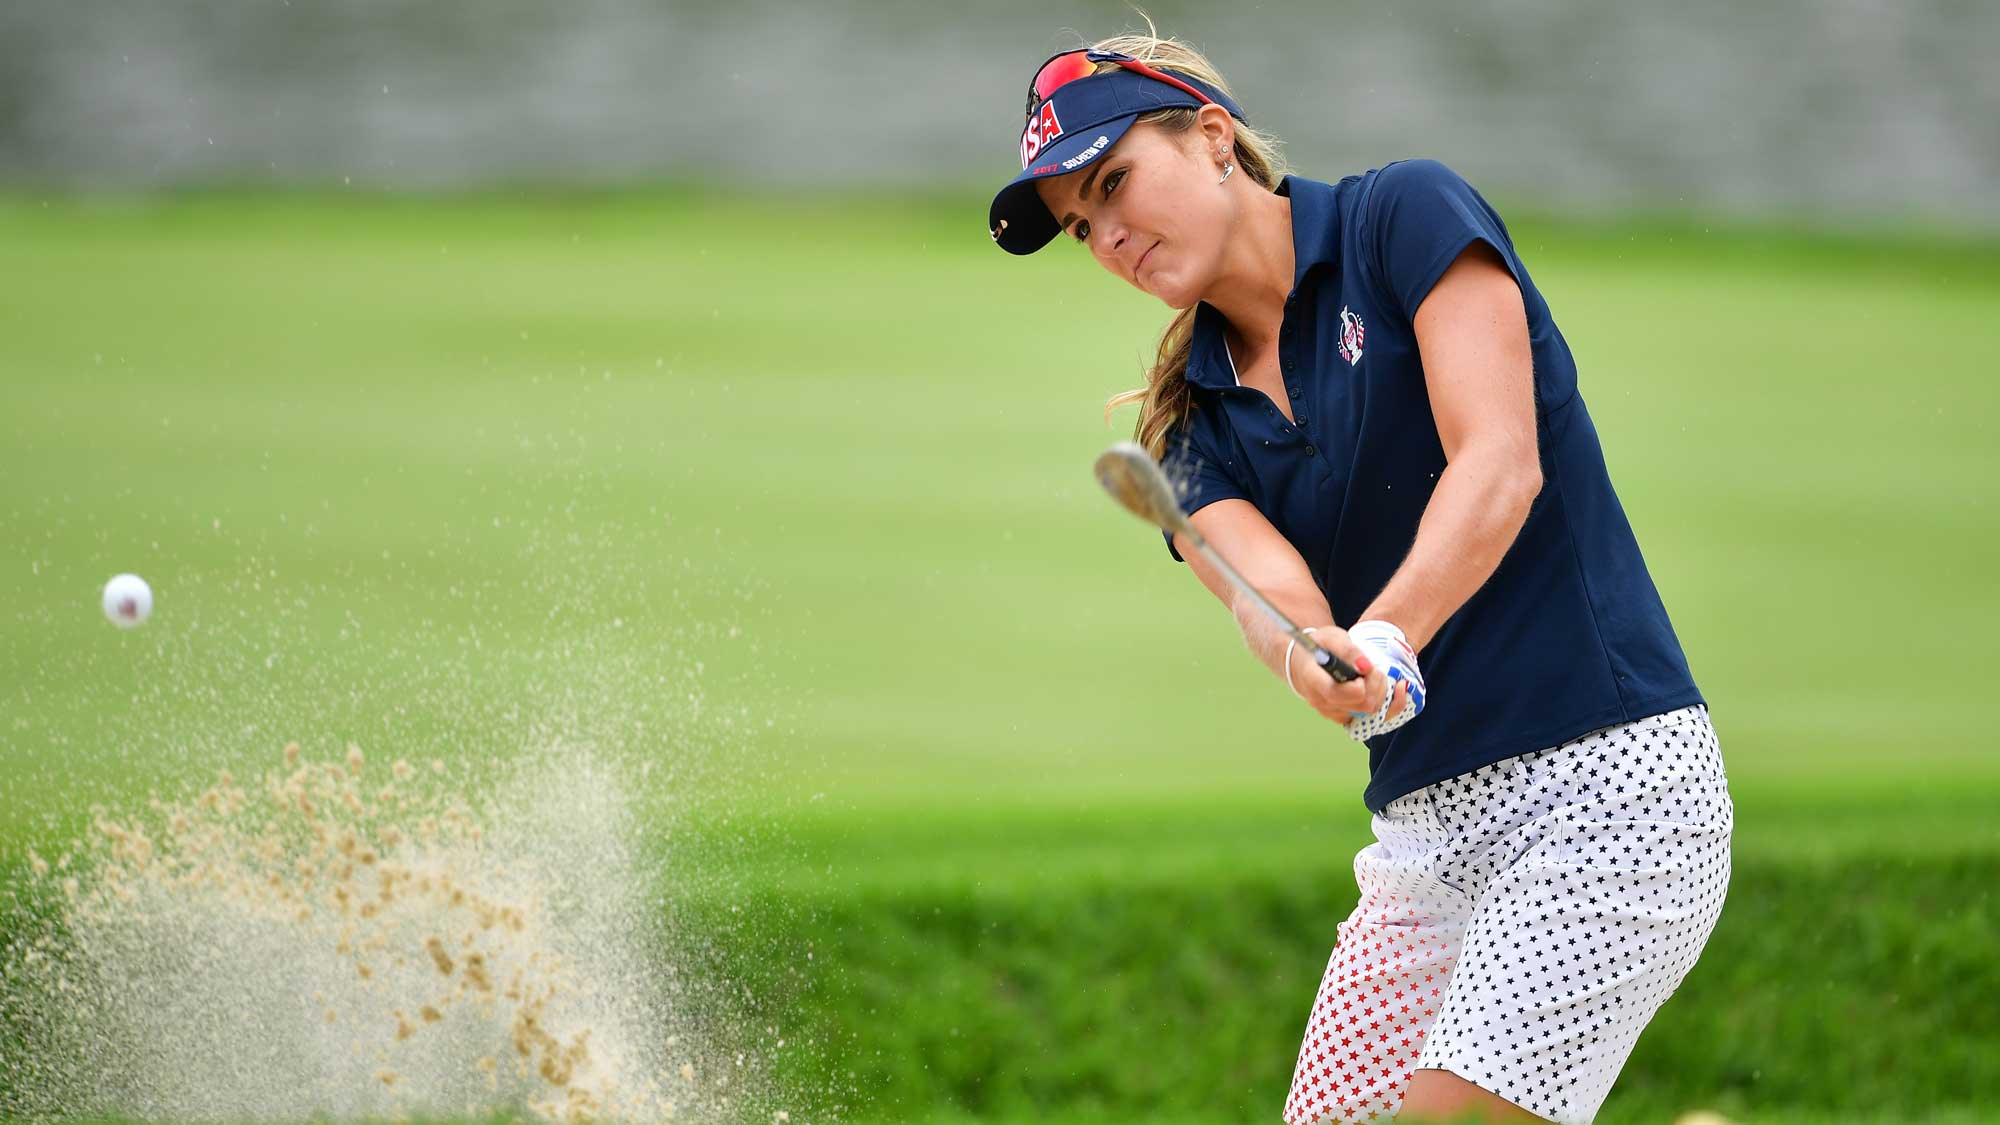 Thursday at Solheim Cup - 5 Things to Know